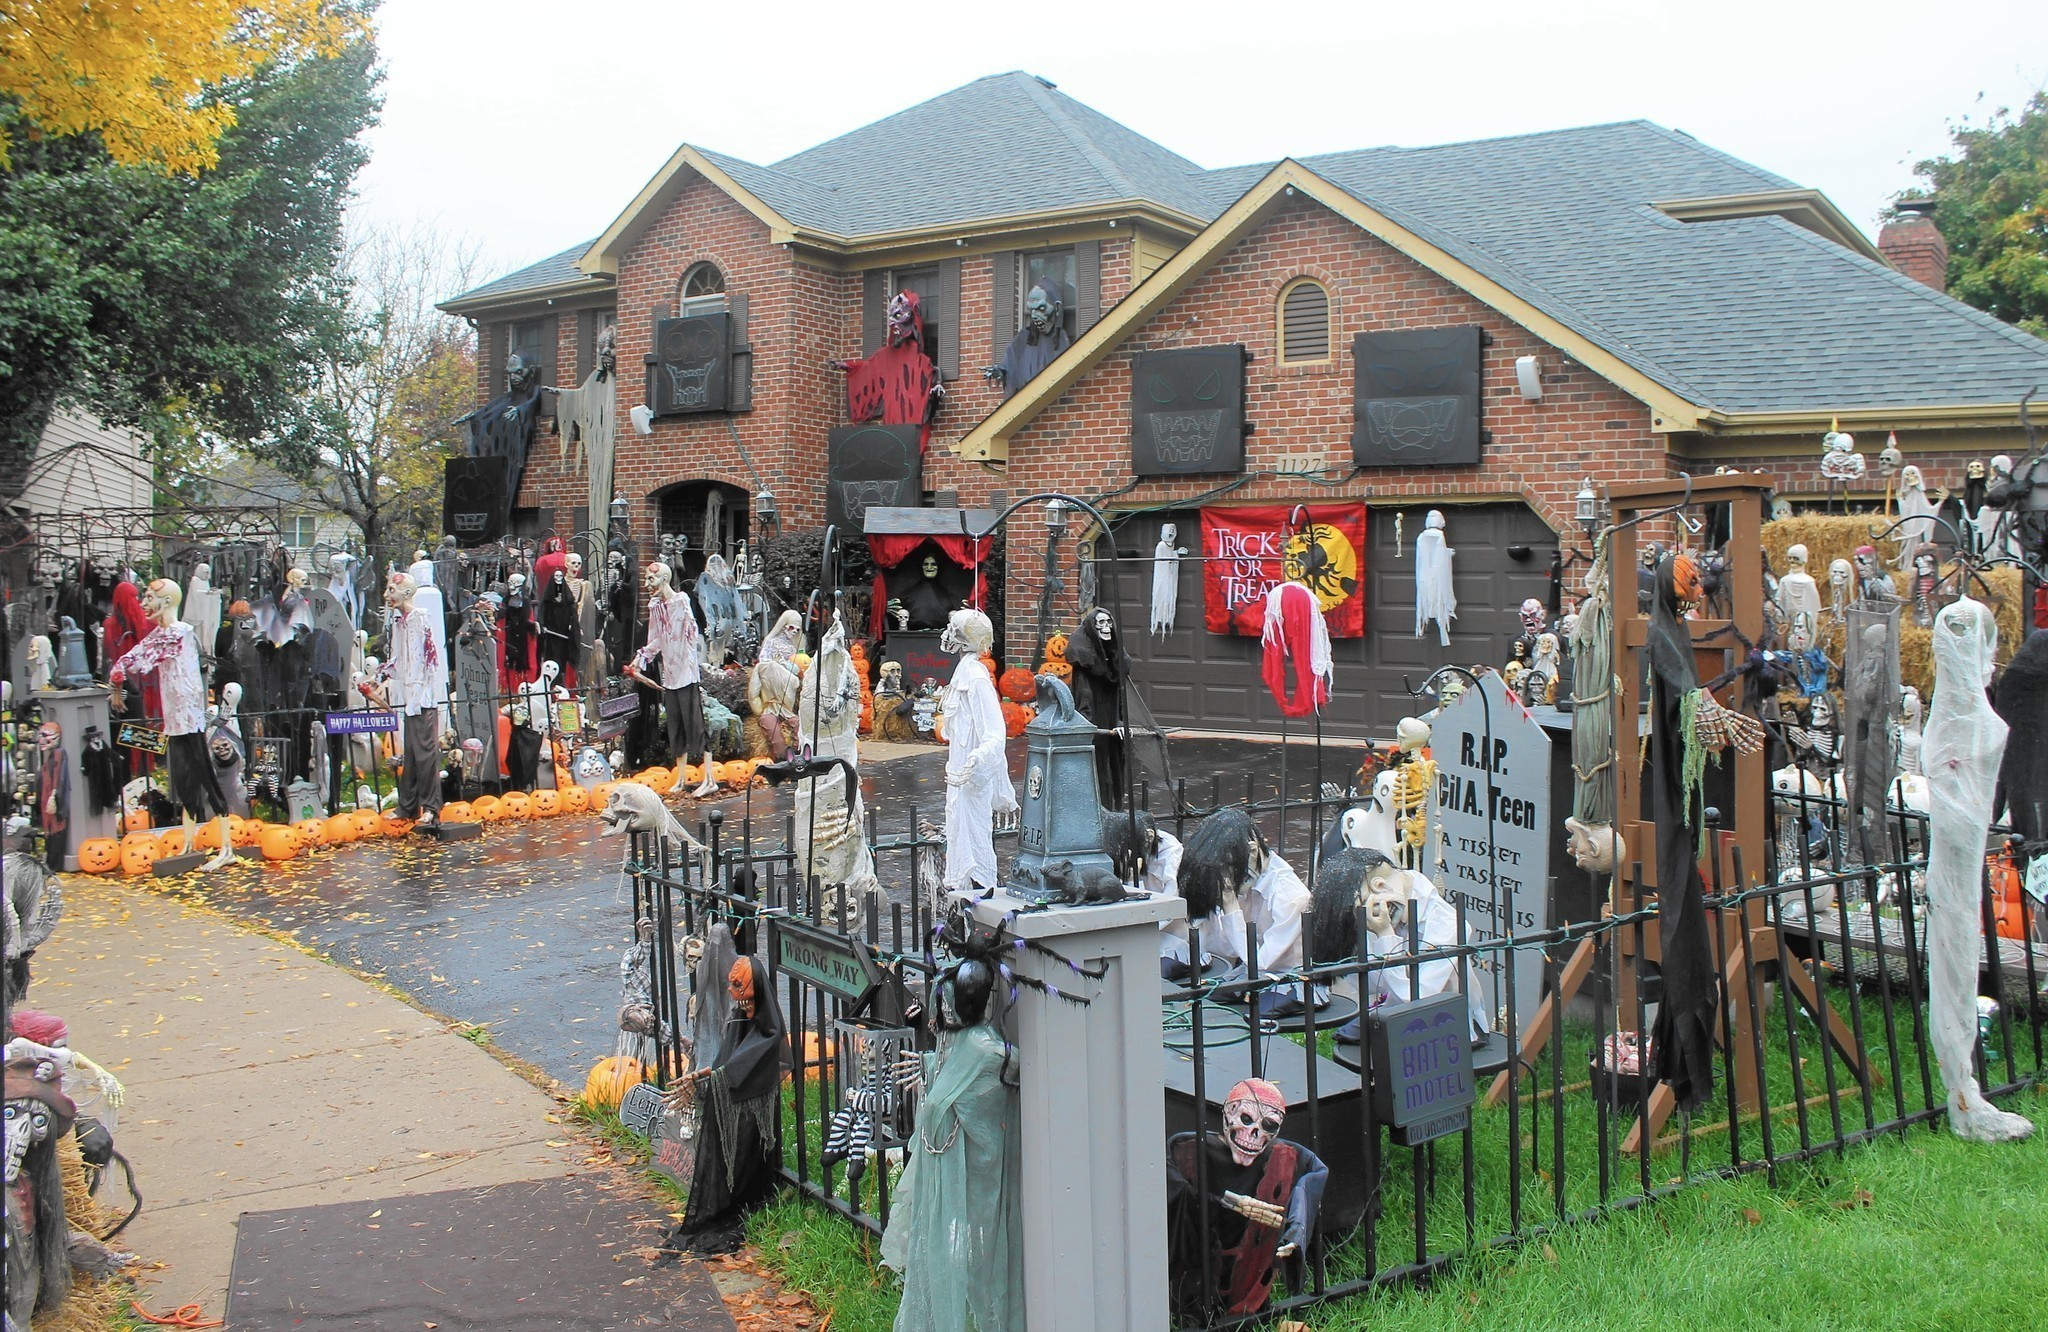 Genial Petition Supporting Halloween House Gets Attention From Around The World    Naperville Sun